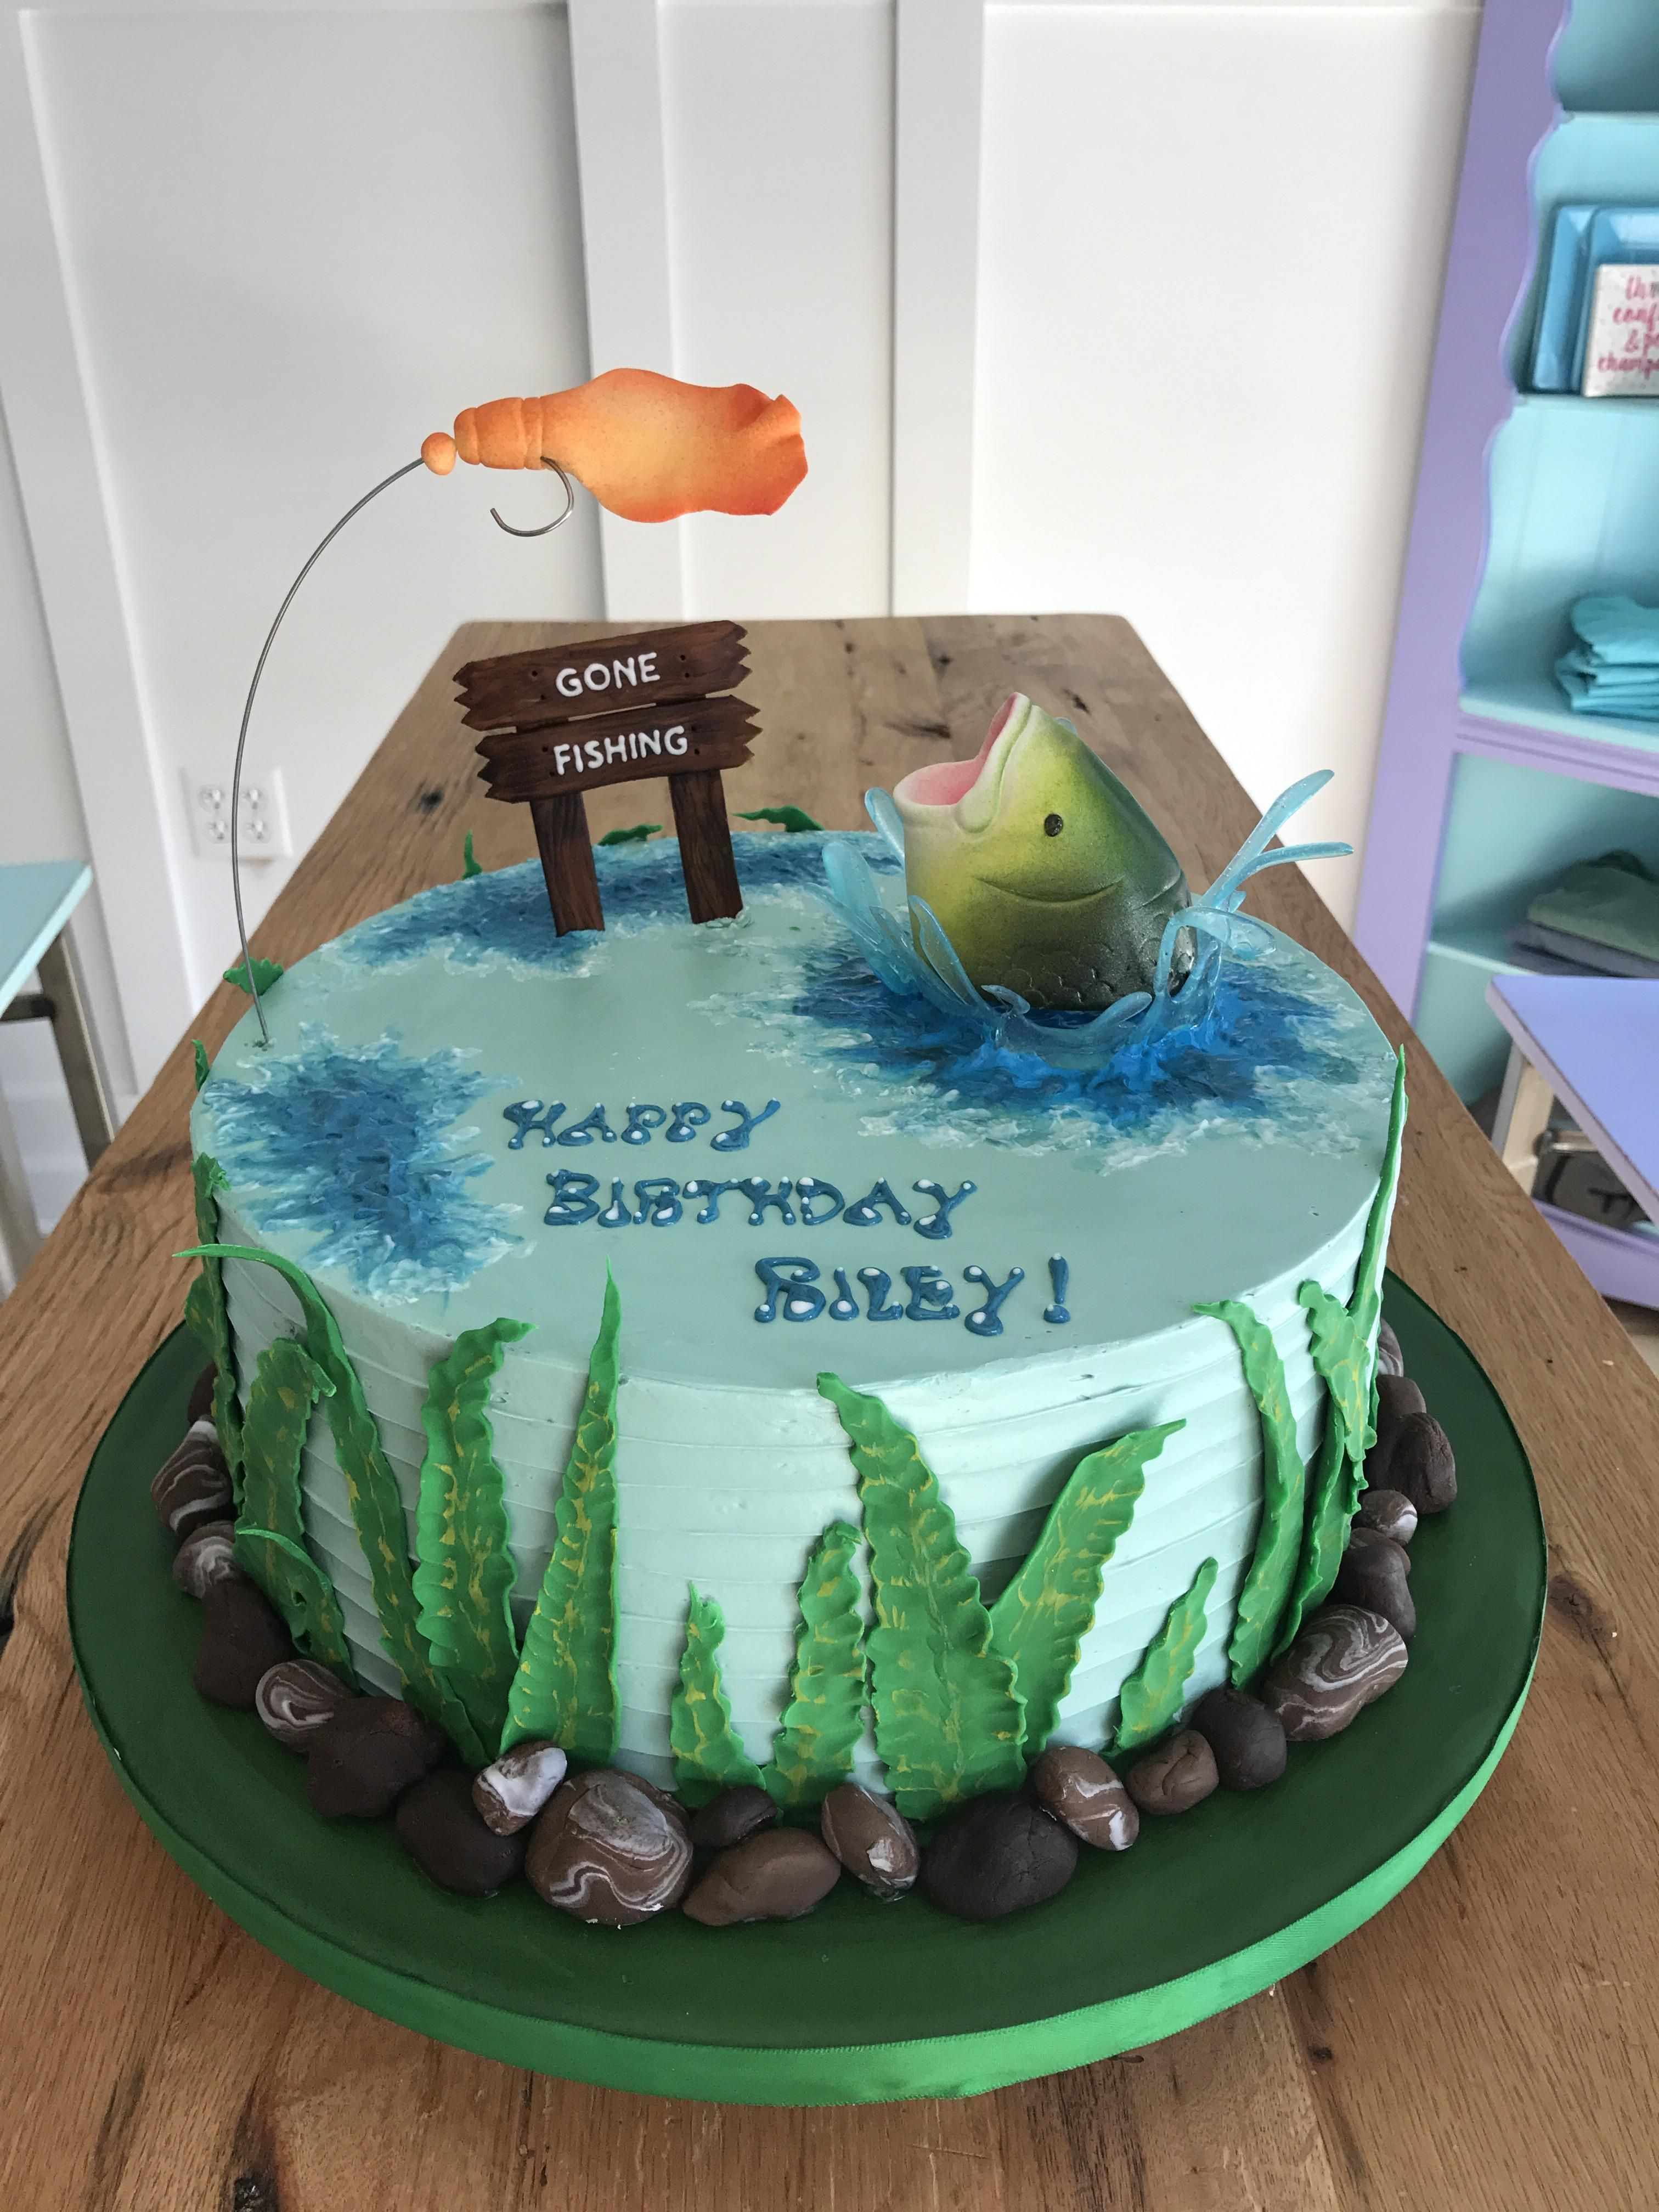 Pleasing 23 Beautiful Picture Of Fish Birthday Cake With Images Fish Funny Birthday Cards Online Alyptdamsfinfo